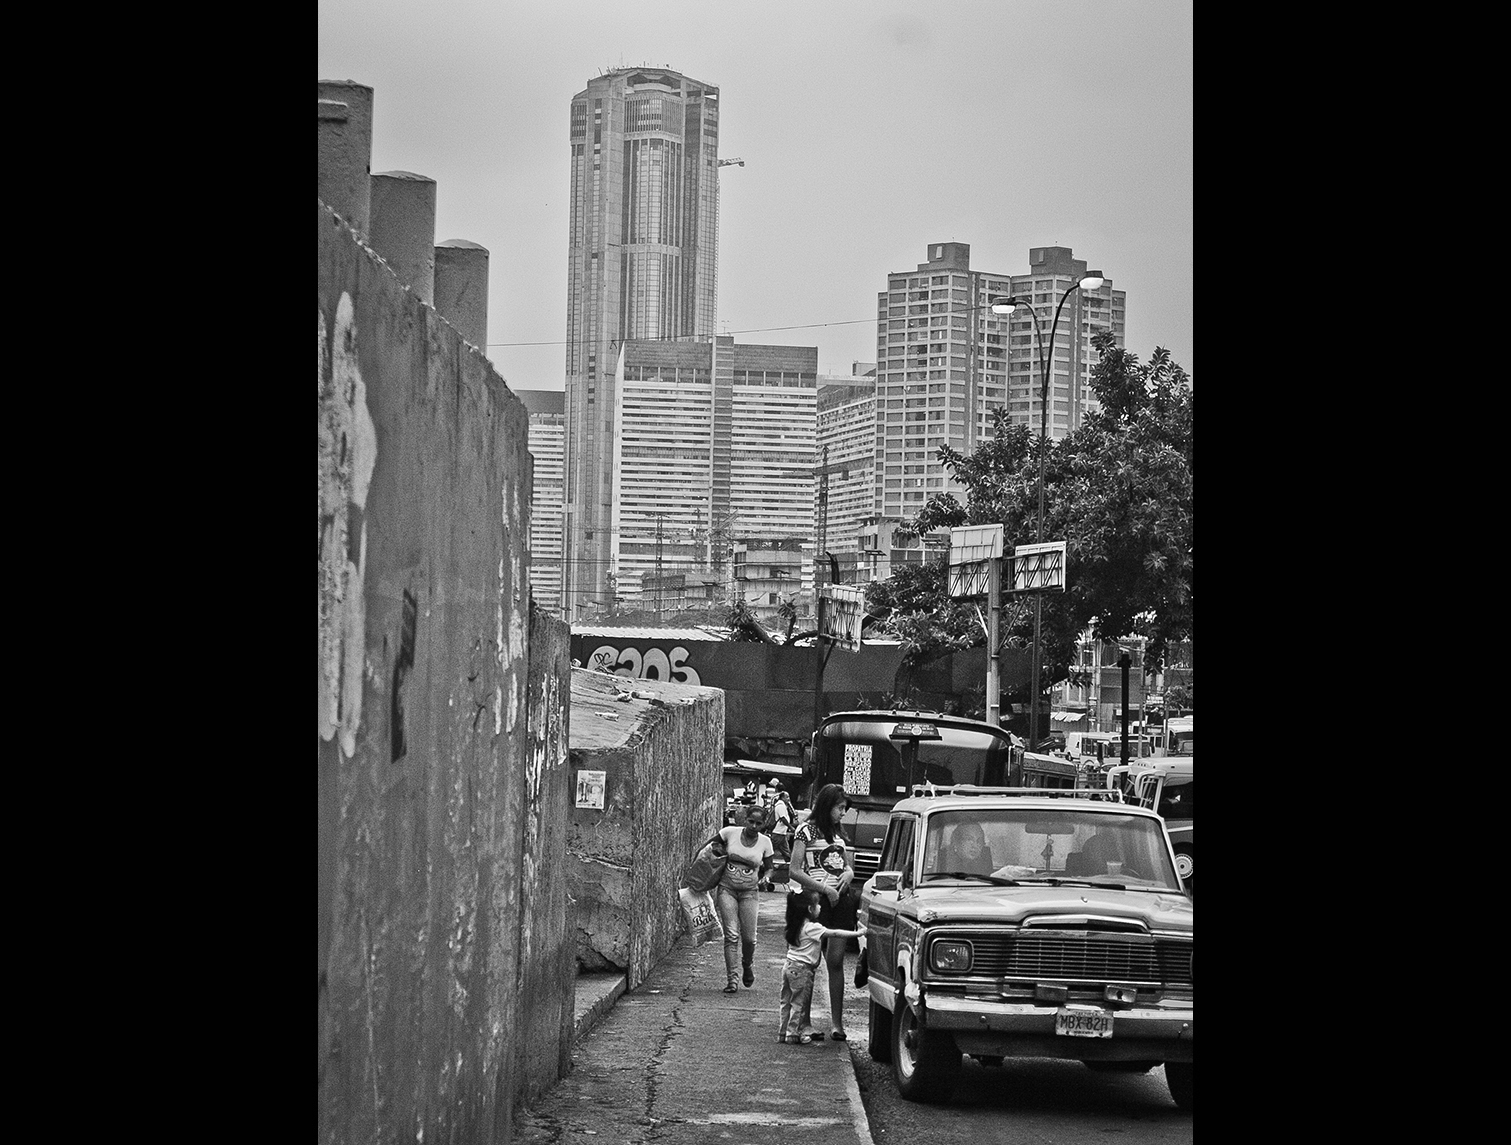 Caracas Venezuela Photography Project